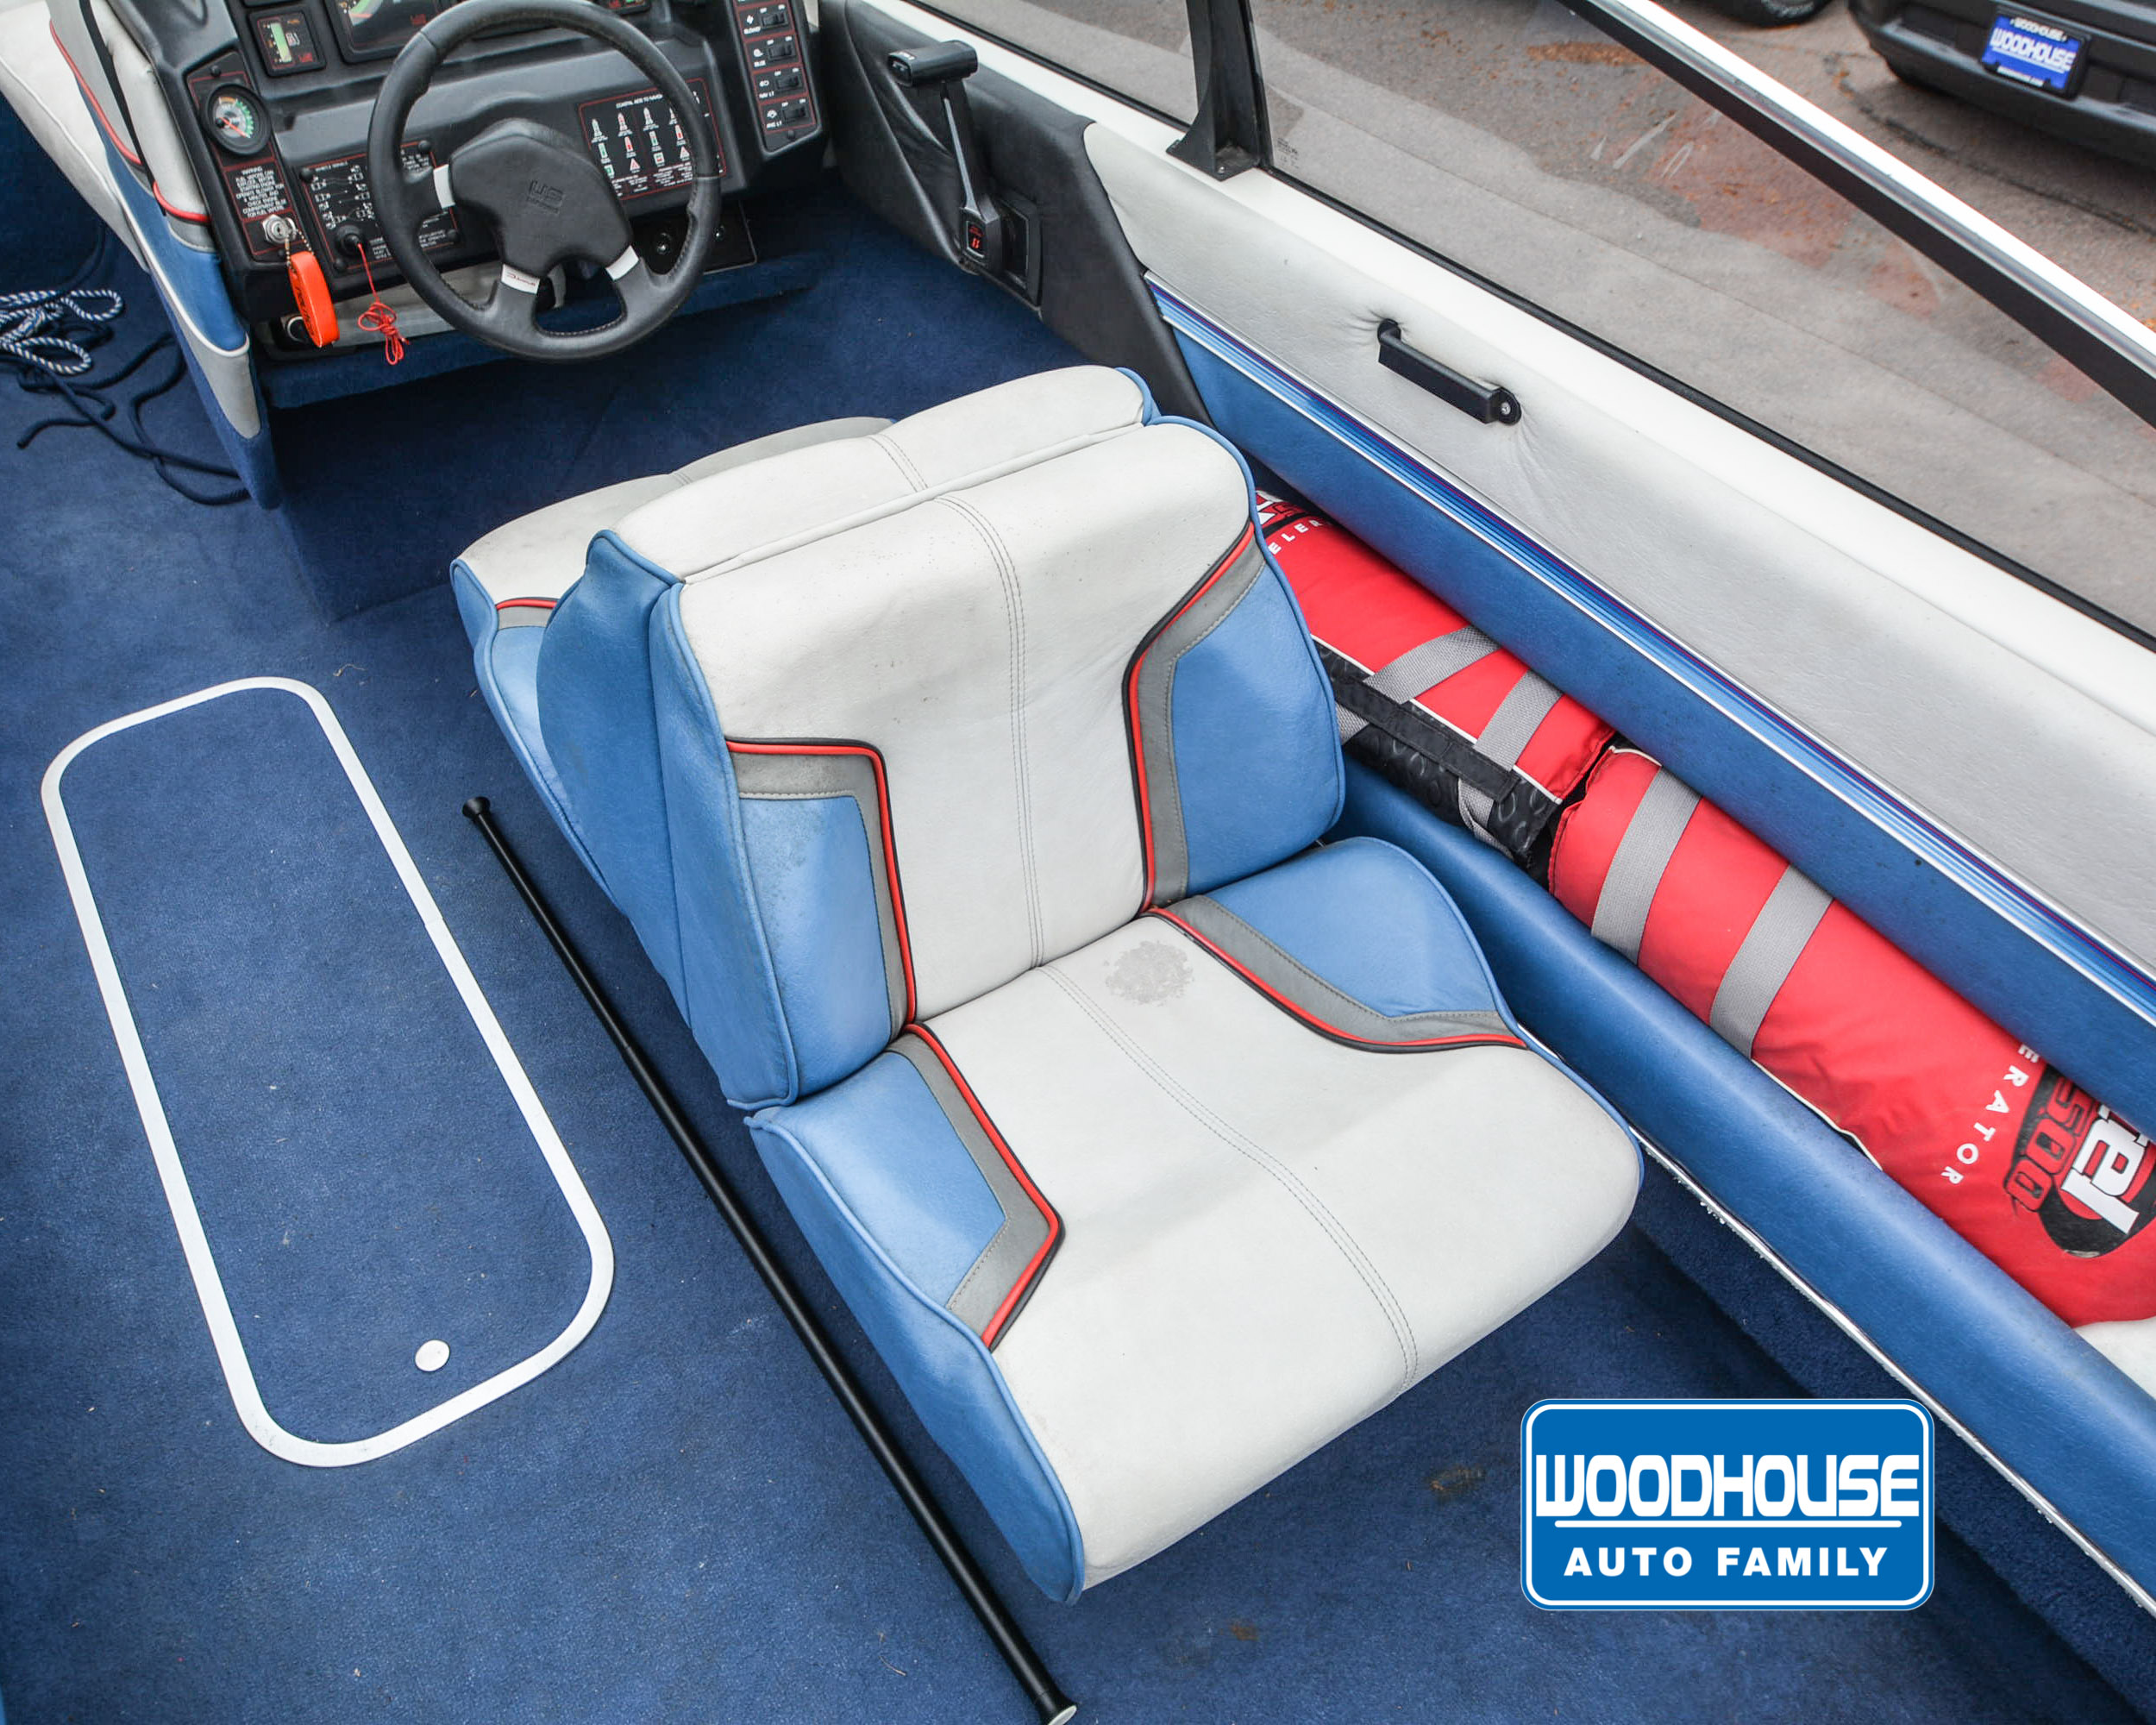 Terrific Woodhouse Used 1987 Bayliner Capri For Sale Chrysler Caraccident5 Cool Chair Designs And Ideas Caraccident5Info